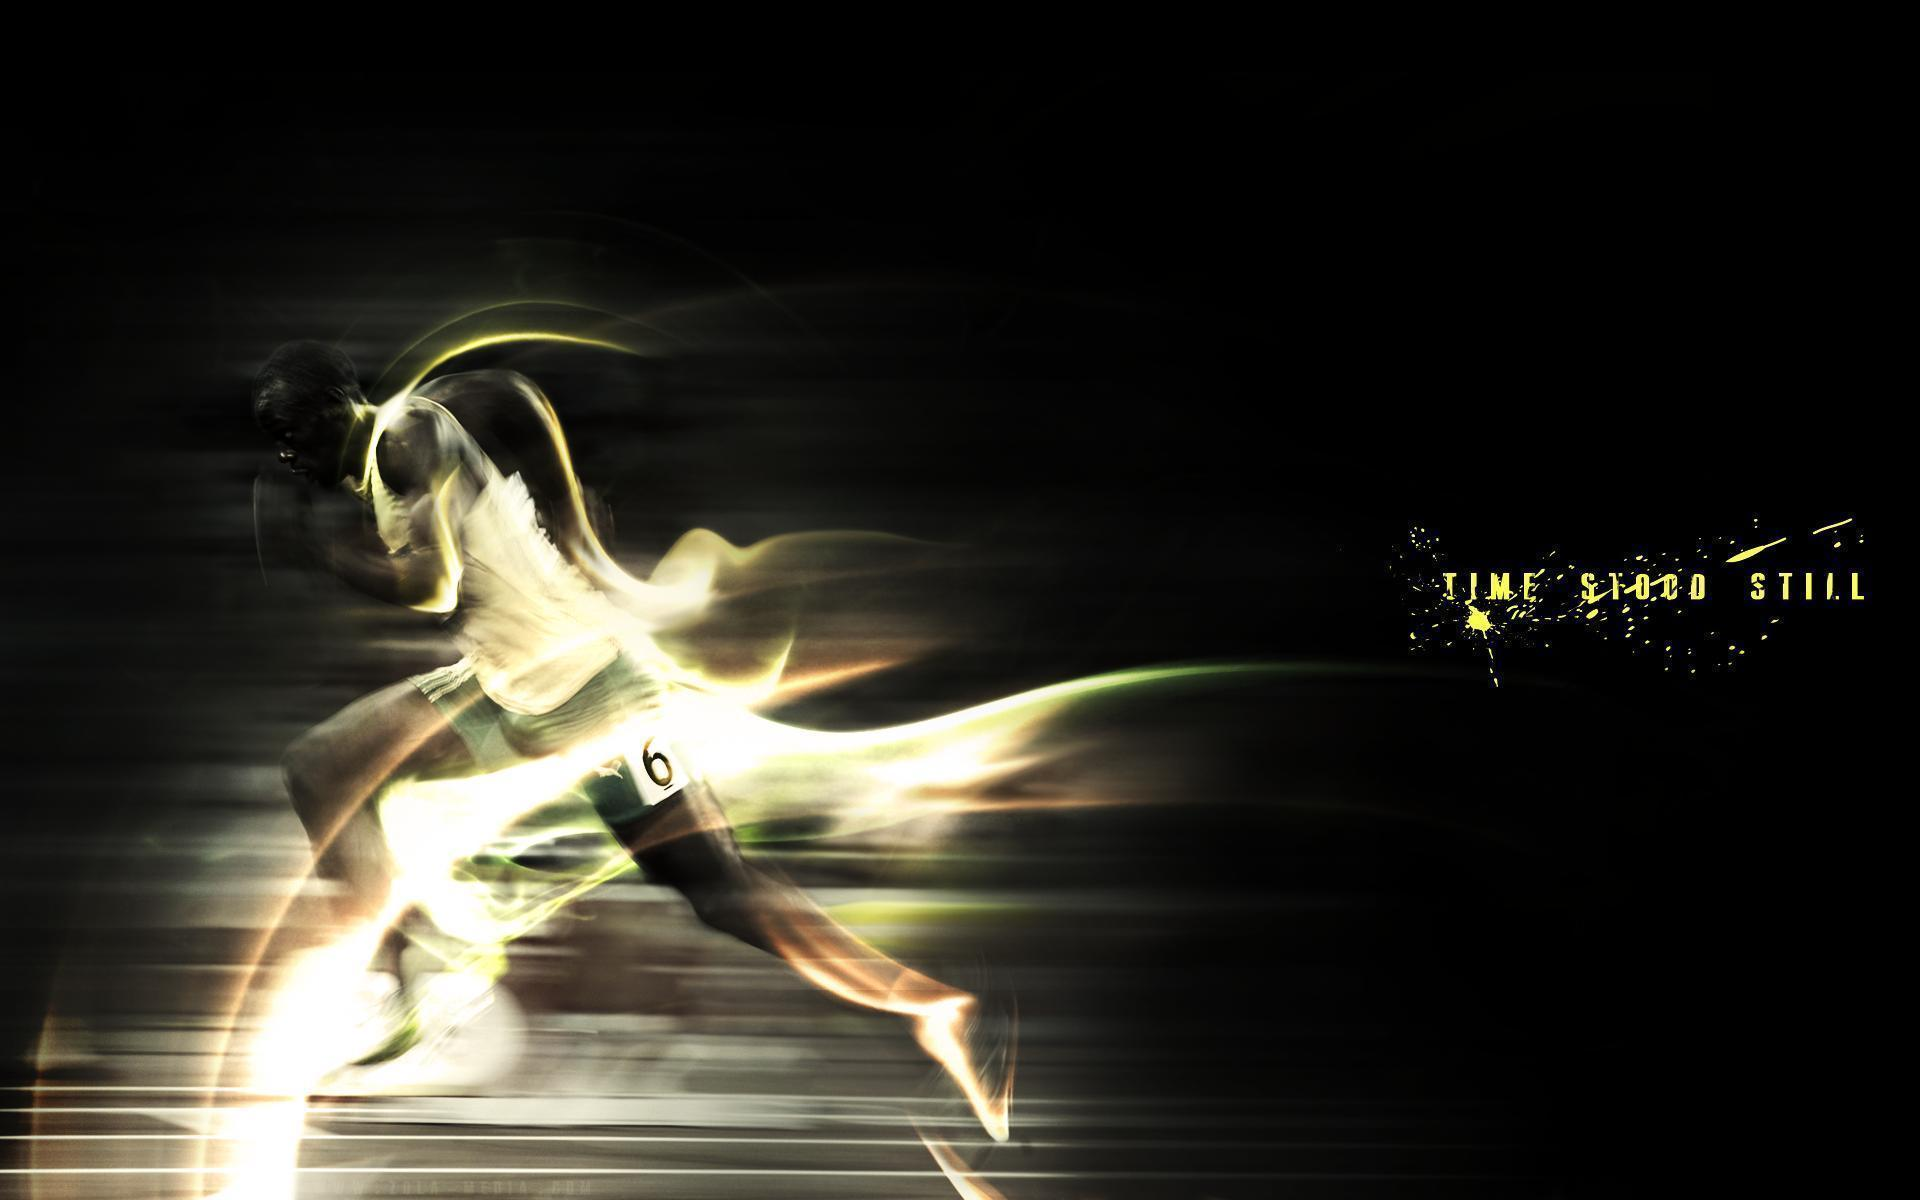 Usain Bolt Wallpaper Berlin HD Wallpapers Pictures | HD Wallpaper ...